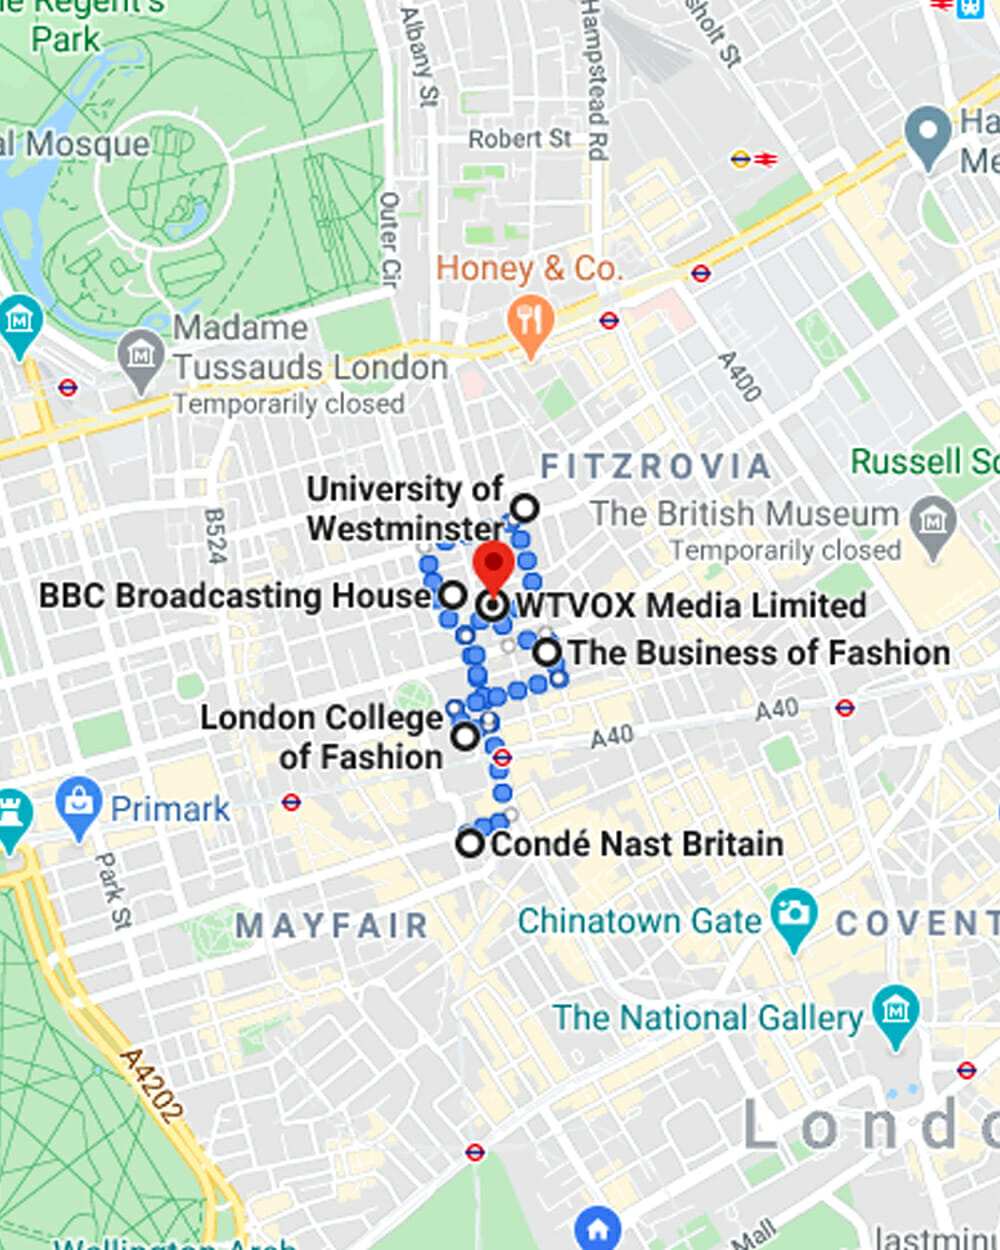 London College of Fashion, Westminster University, BBC, Conde Nast Britain, Business of Fashion and WTVOX Media in London on Google map